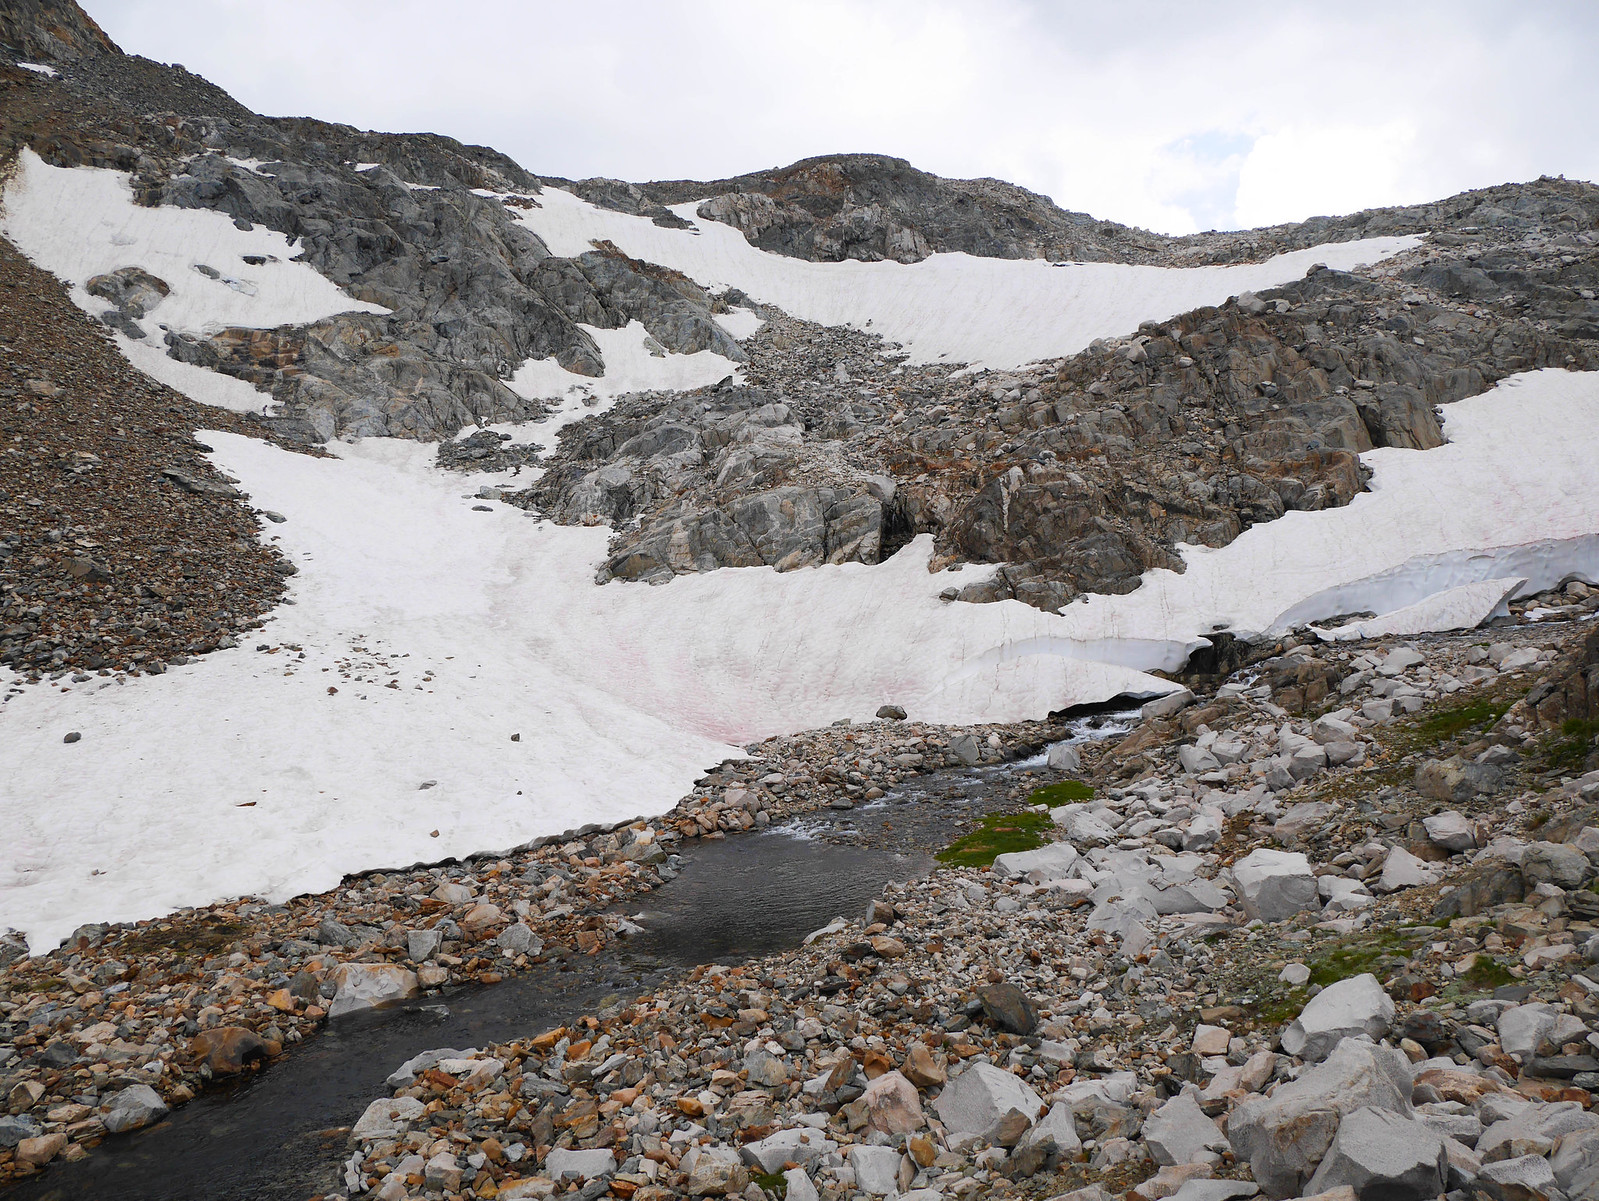 Still some snow in the steep canyon of the Middle Fork of the Kings River below Muir Pass